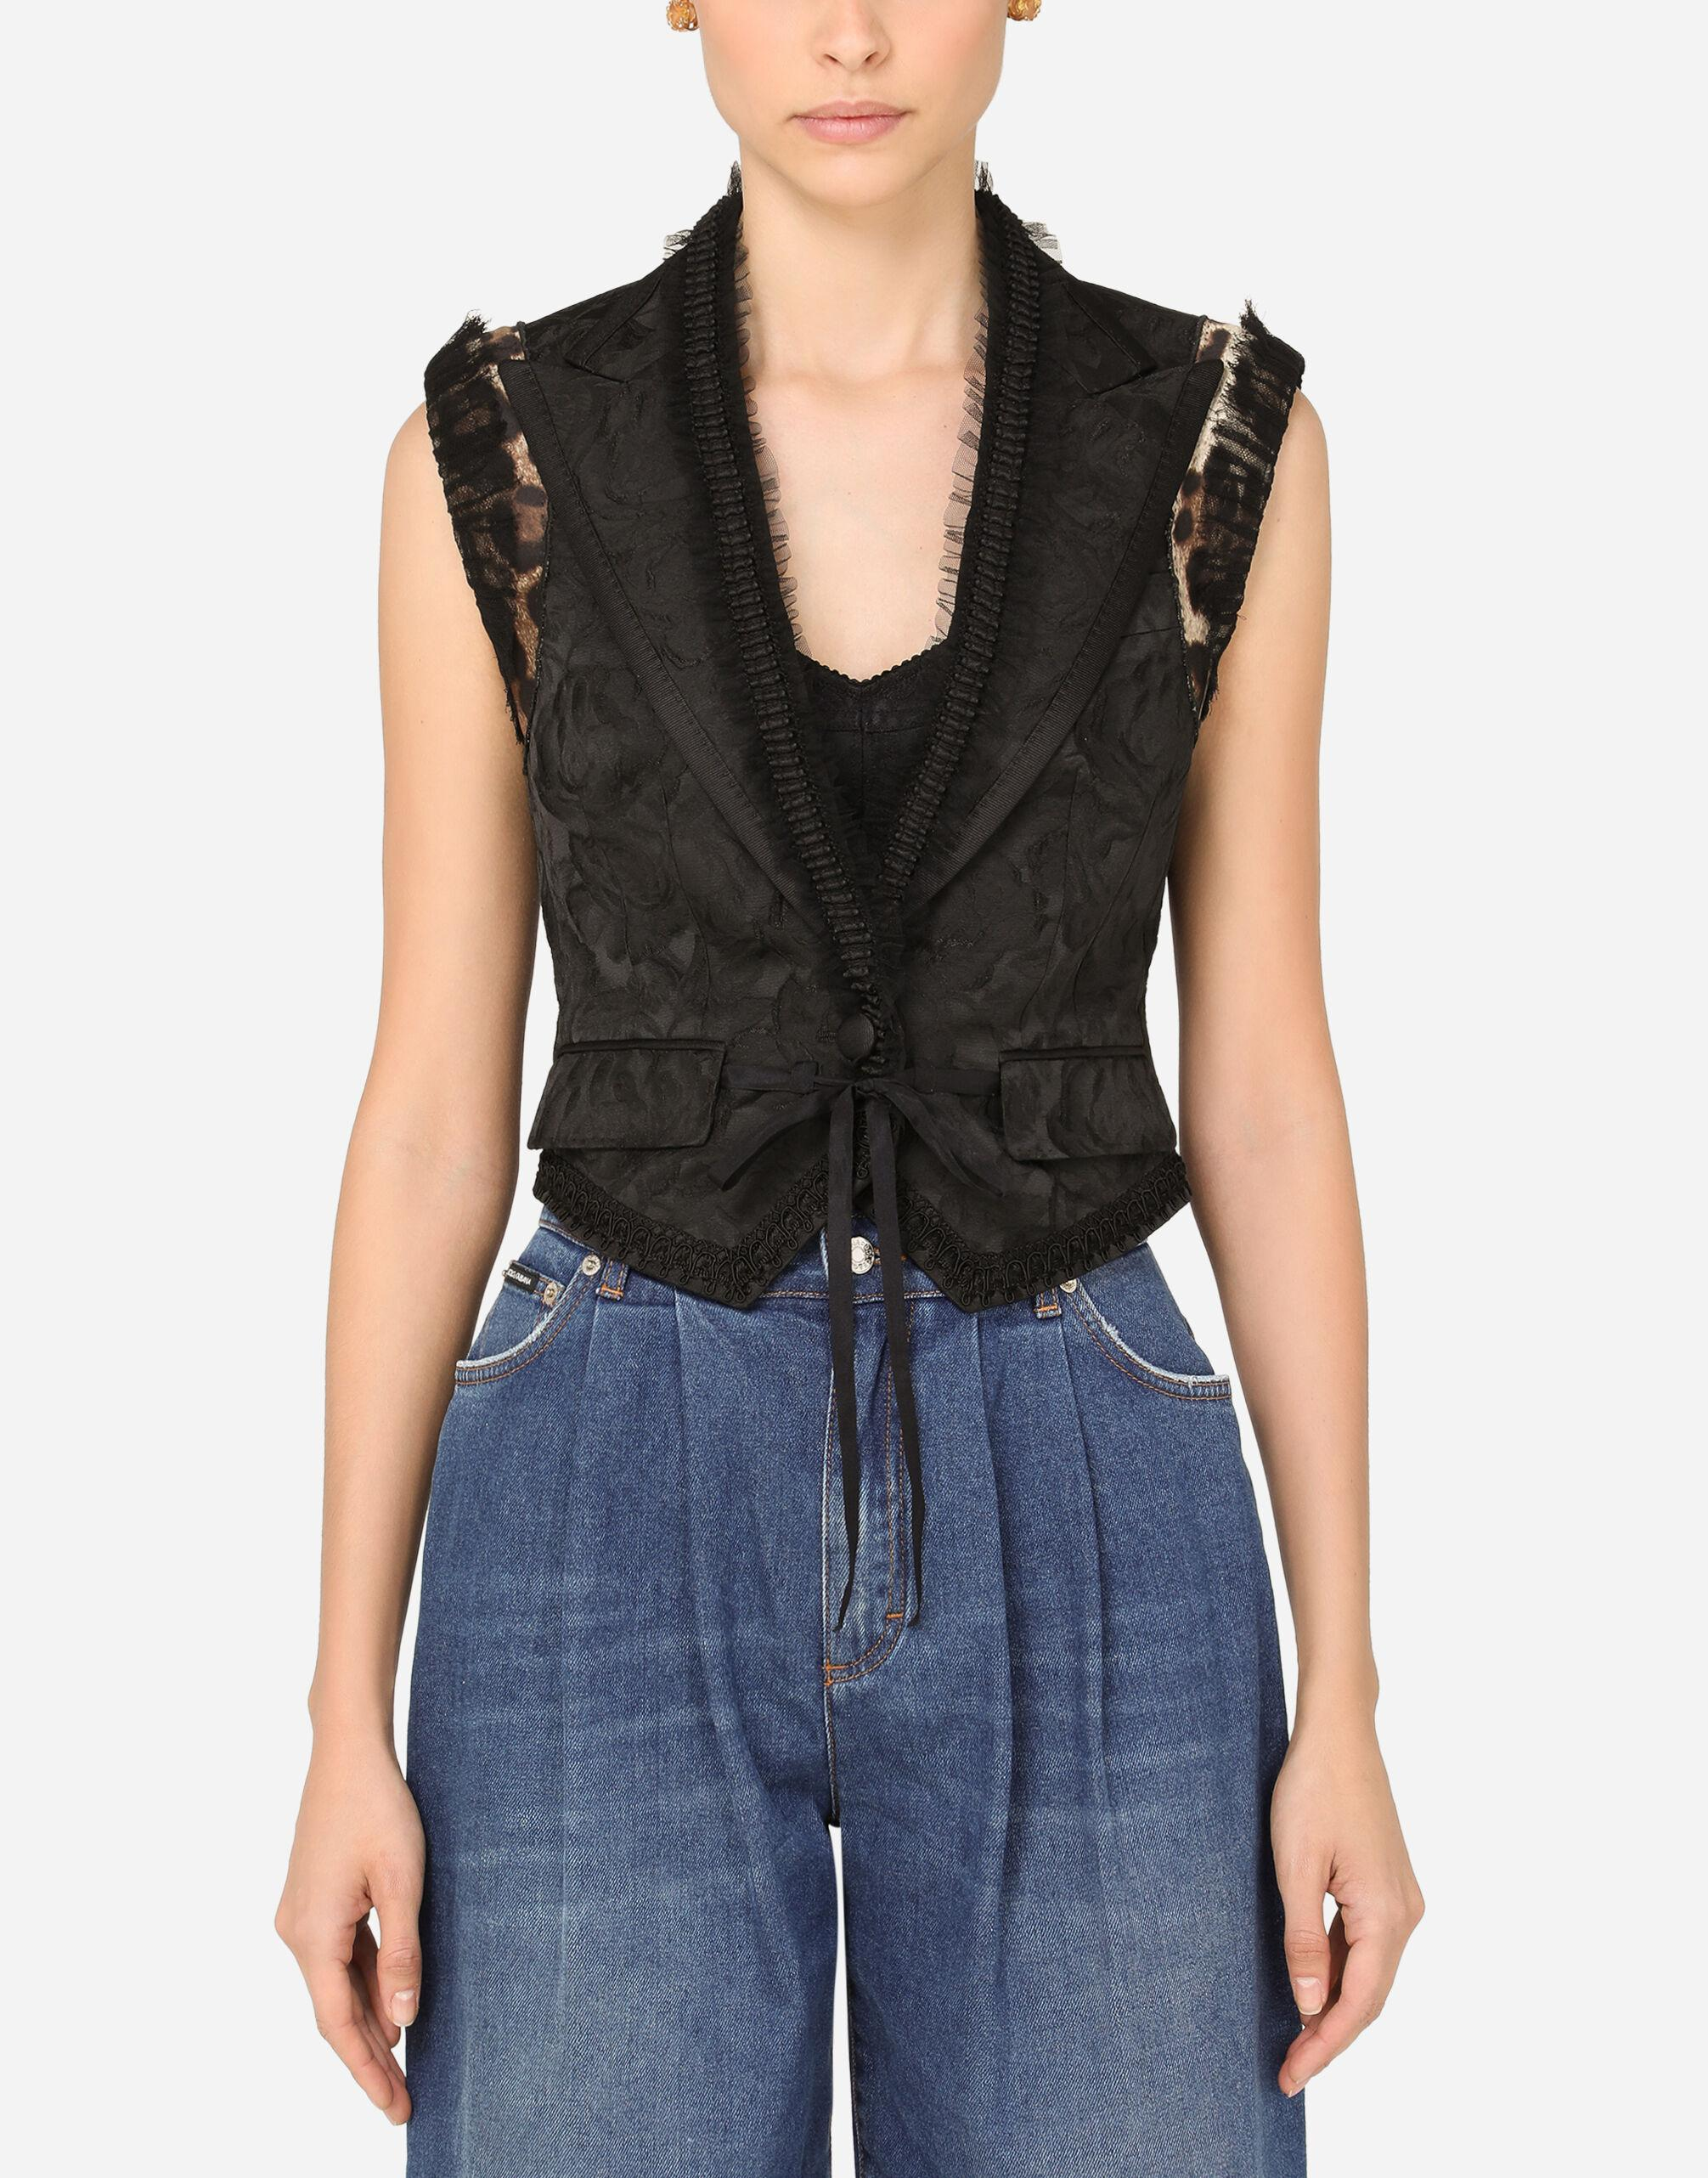 Jacquard vest with braided trims